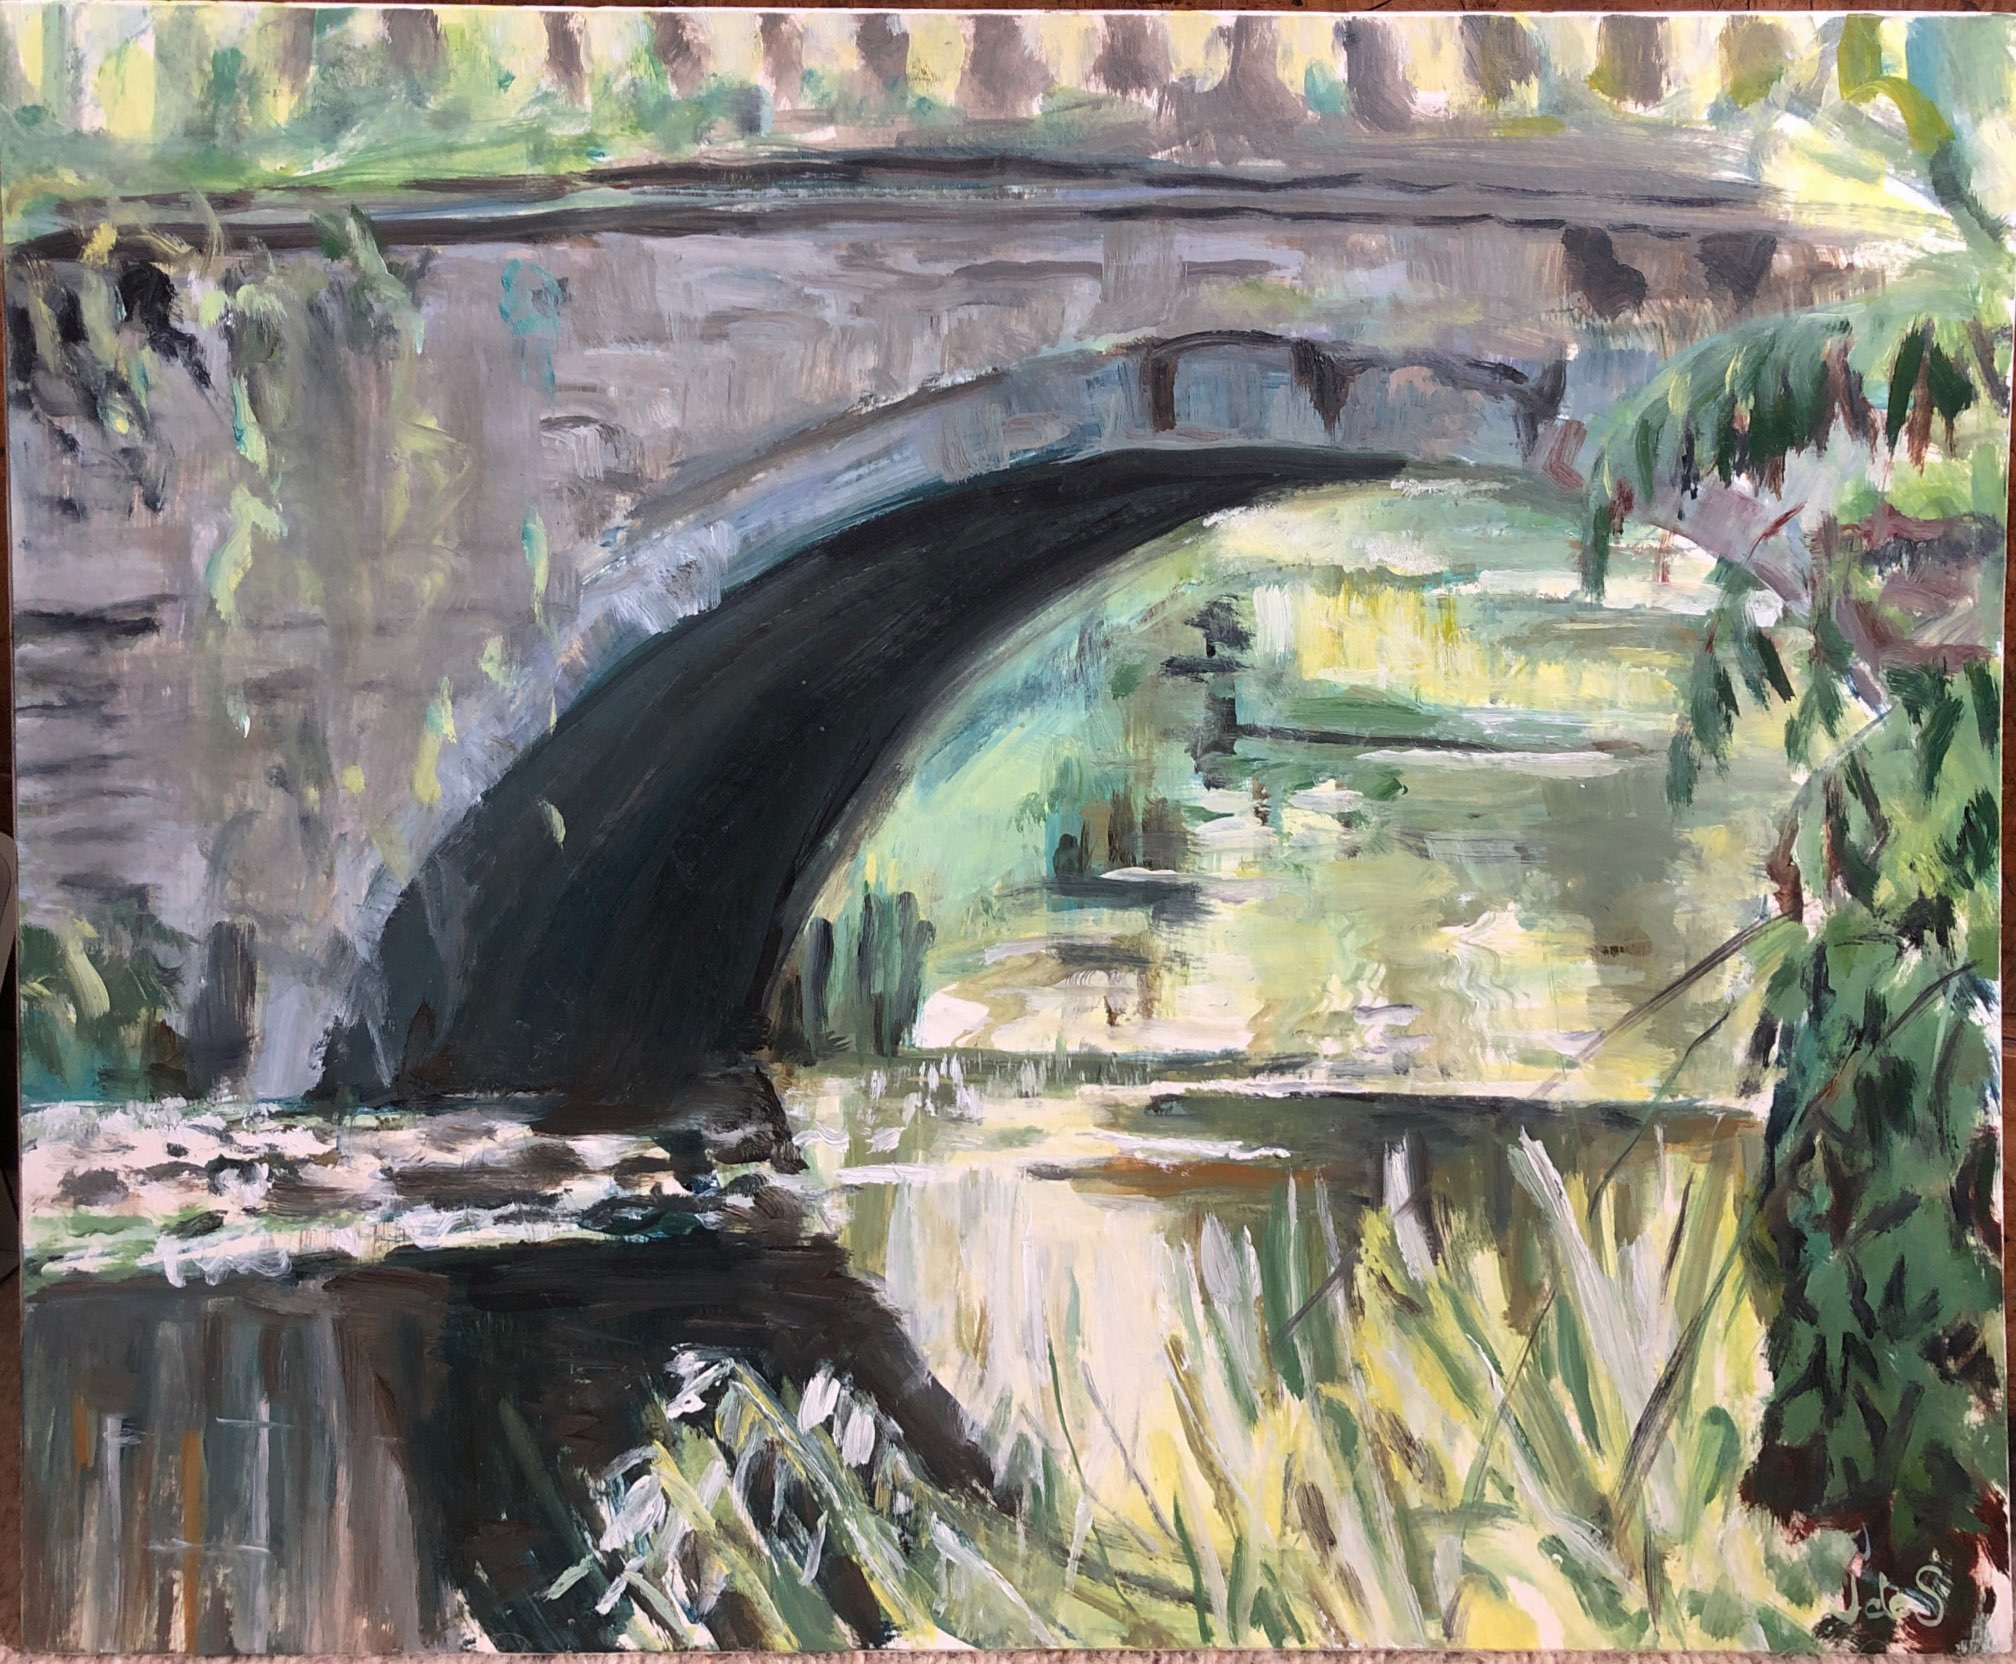 Bridge over troubled waters 44x36 oil